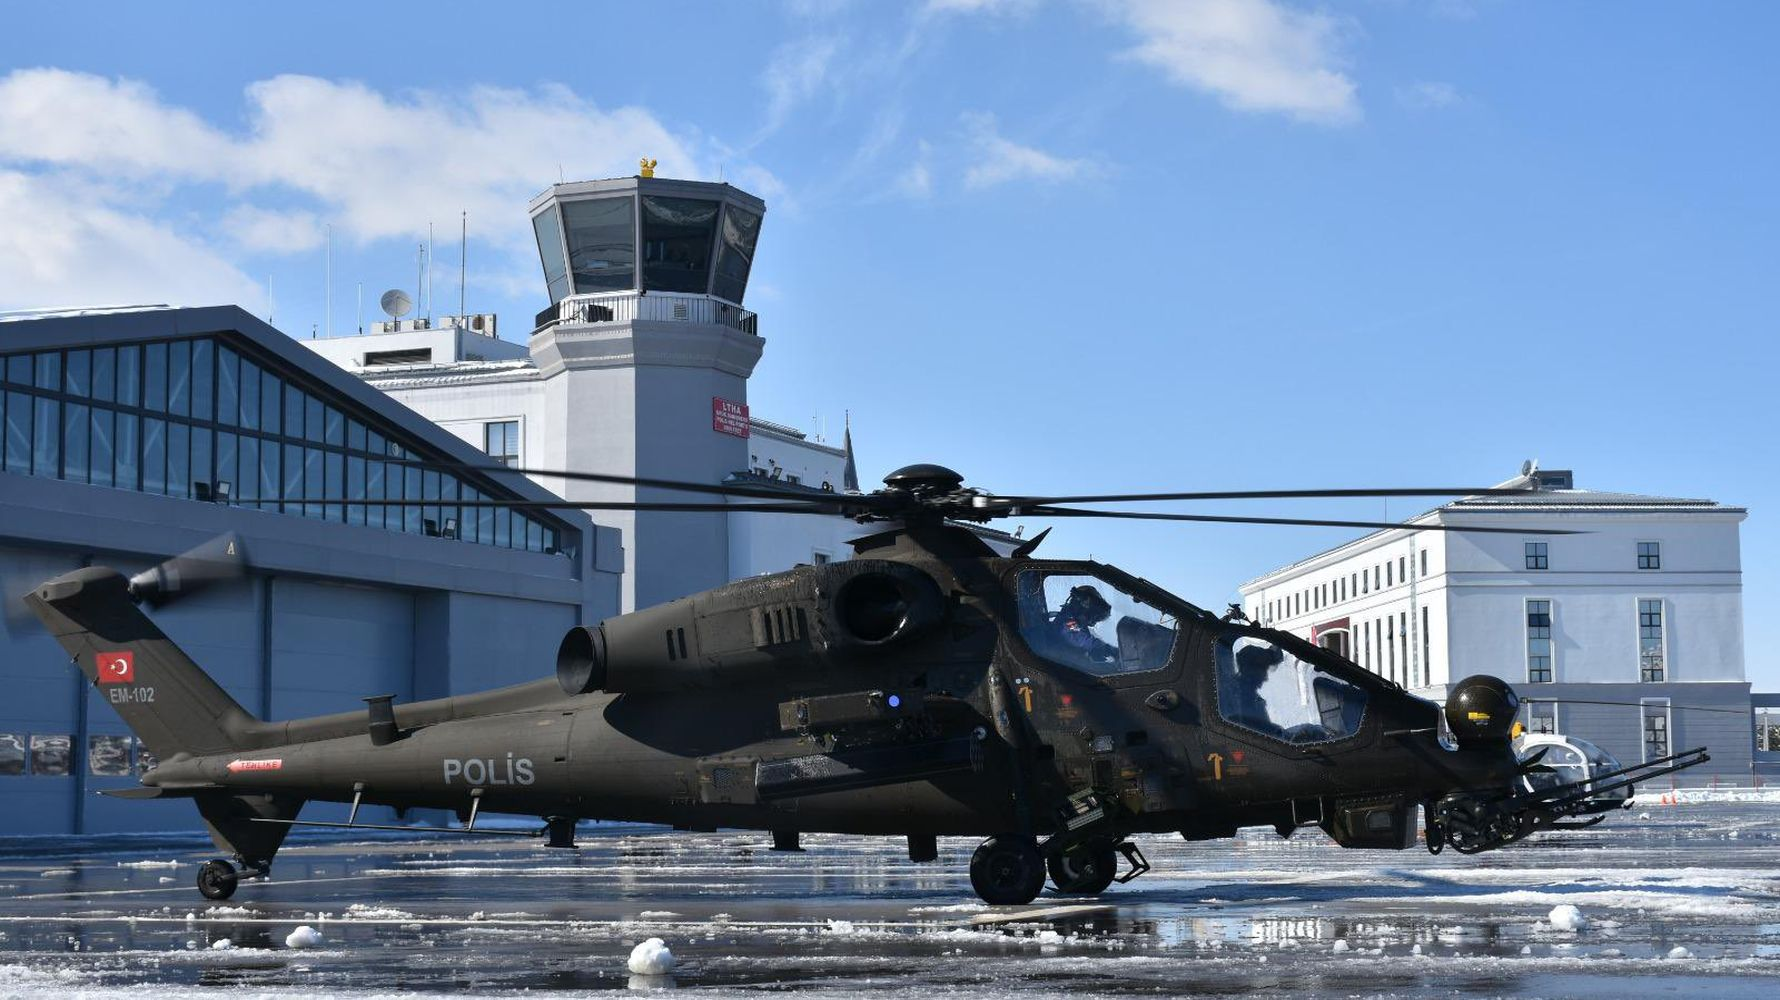 security unit took delivery of the attack phase helicopter